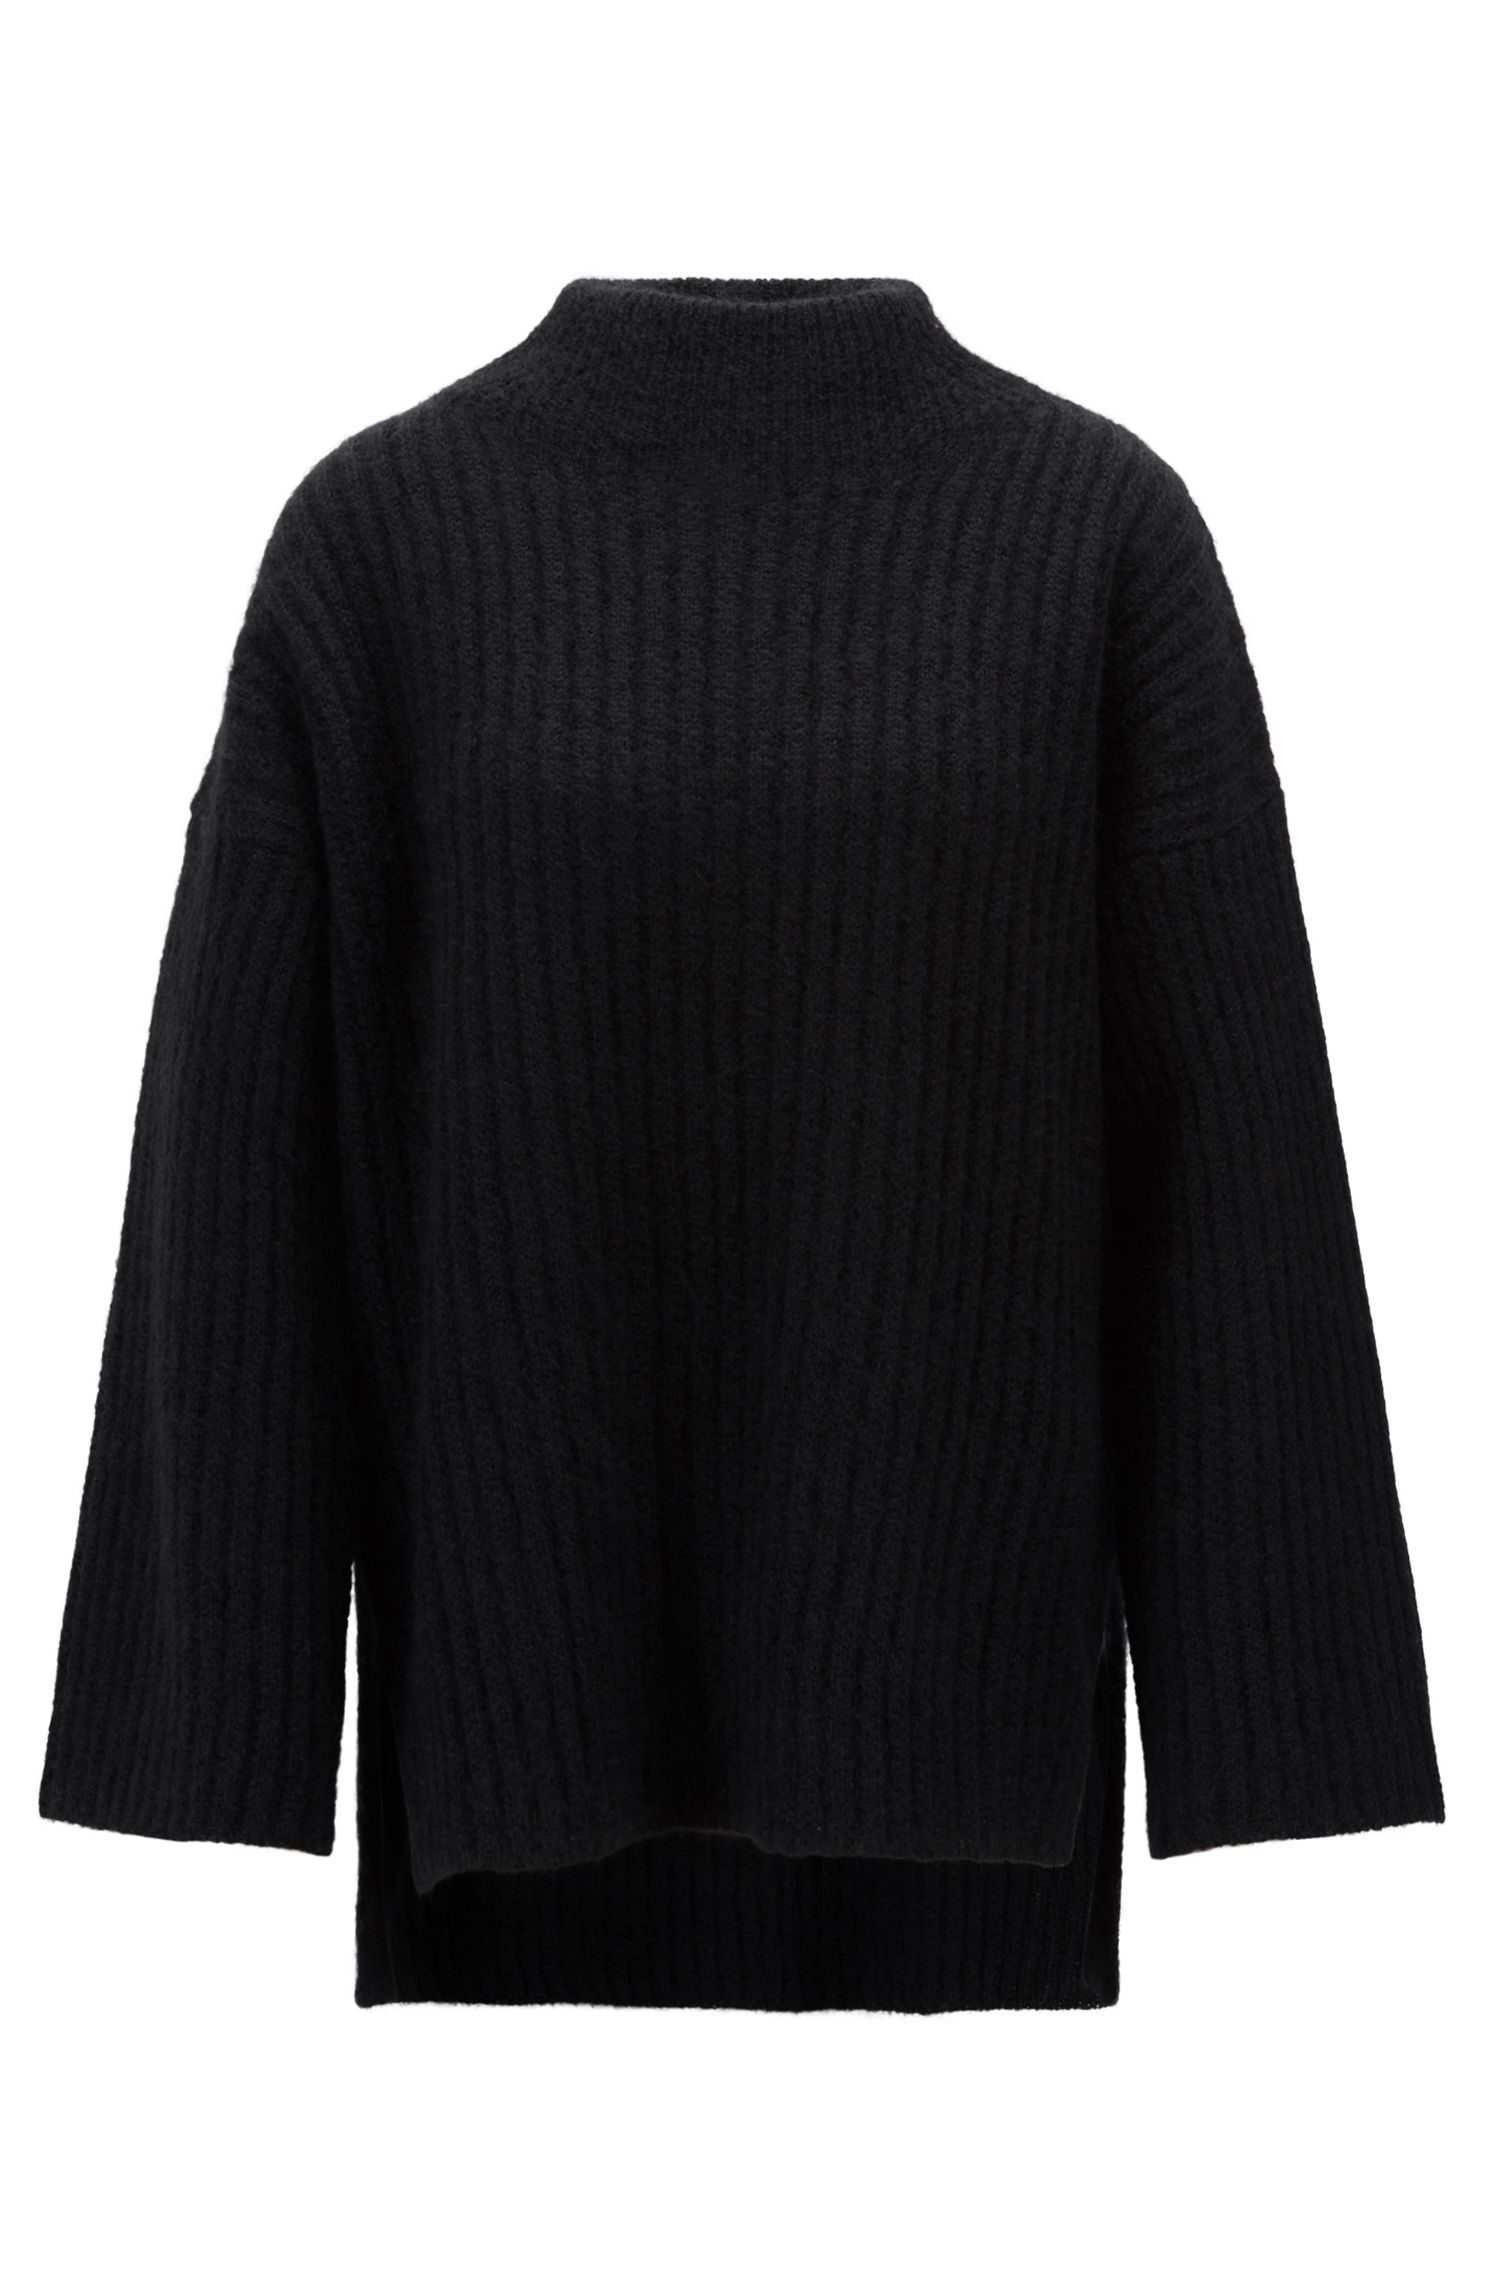 Funnel-neck sweater in an Italian wool blend